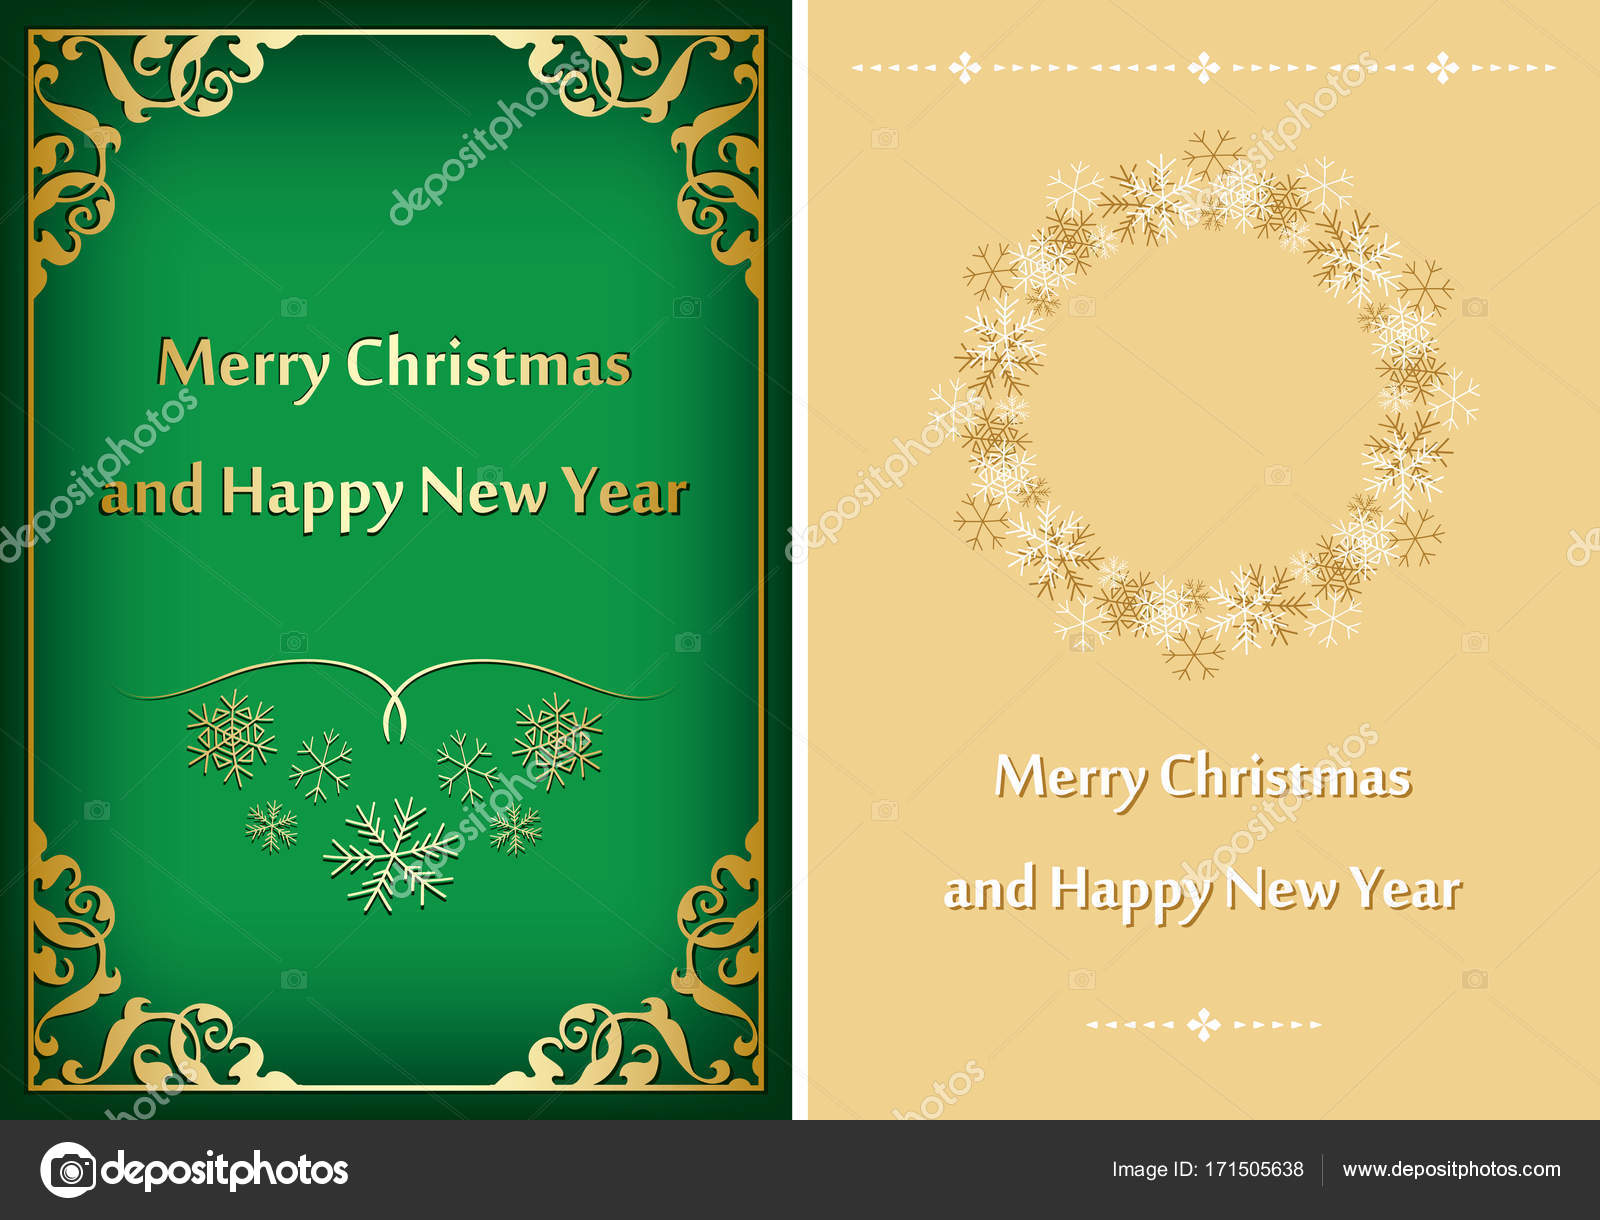 green and beige greeting cards for christmas - vector postcards ...